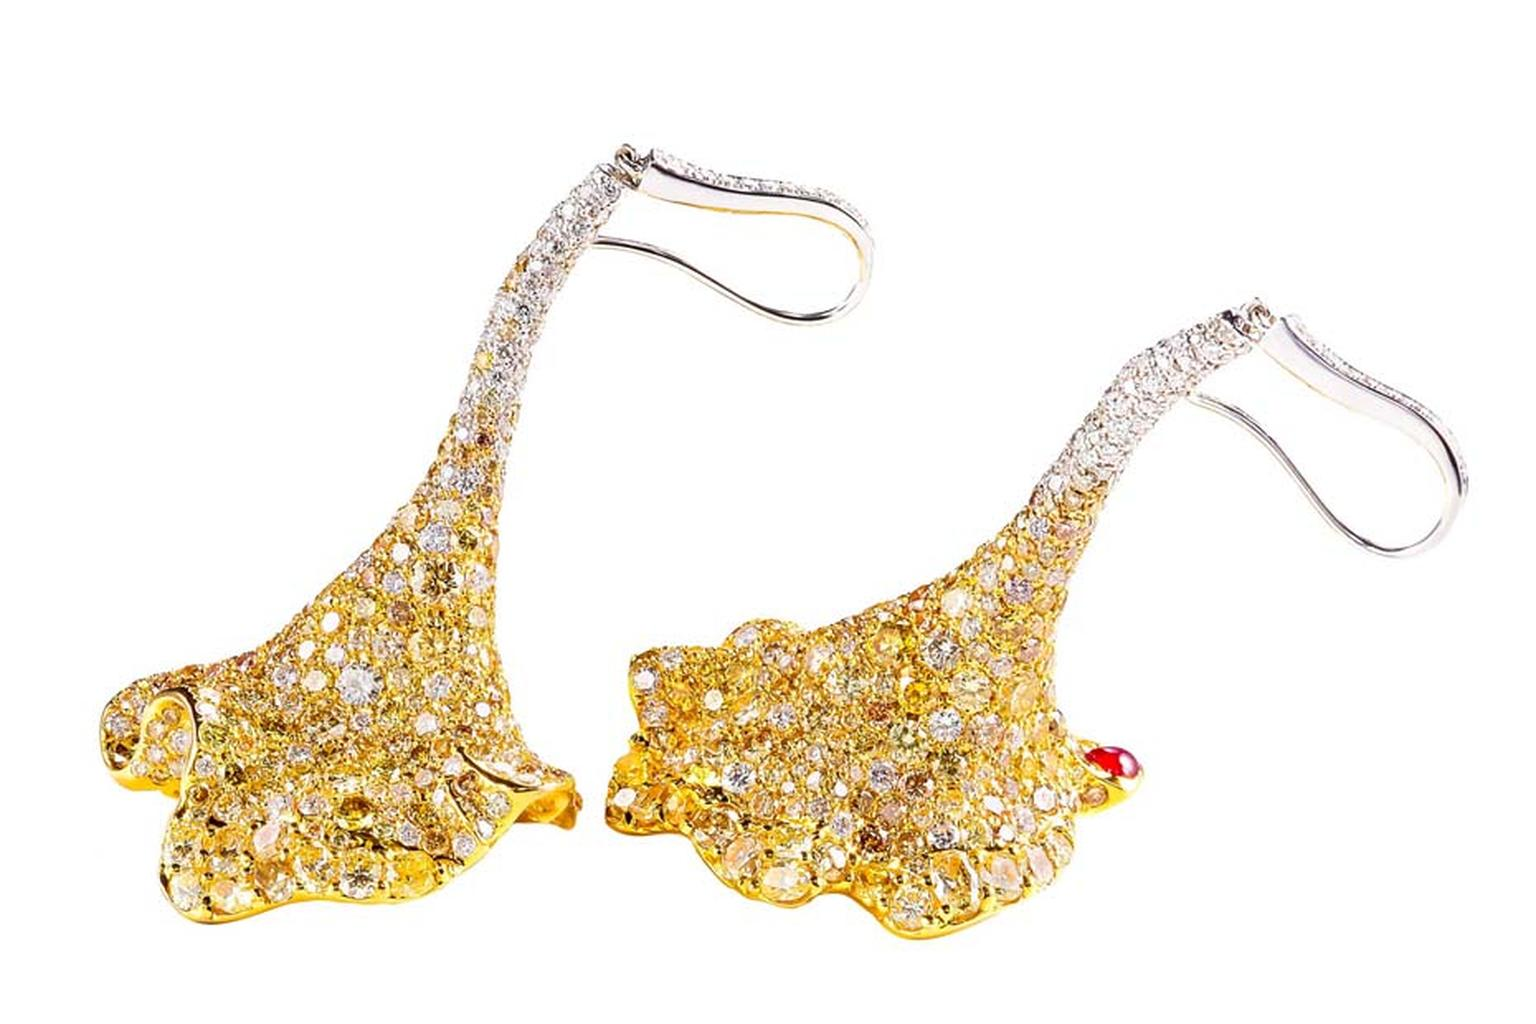 Chara Wen earrings with diamonds.